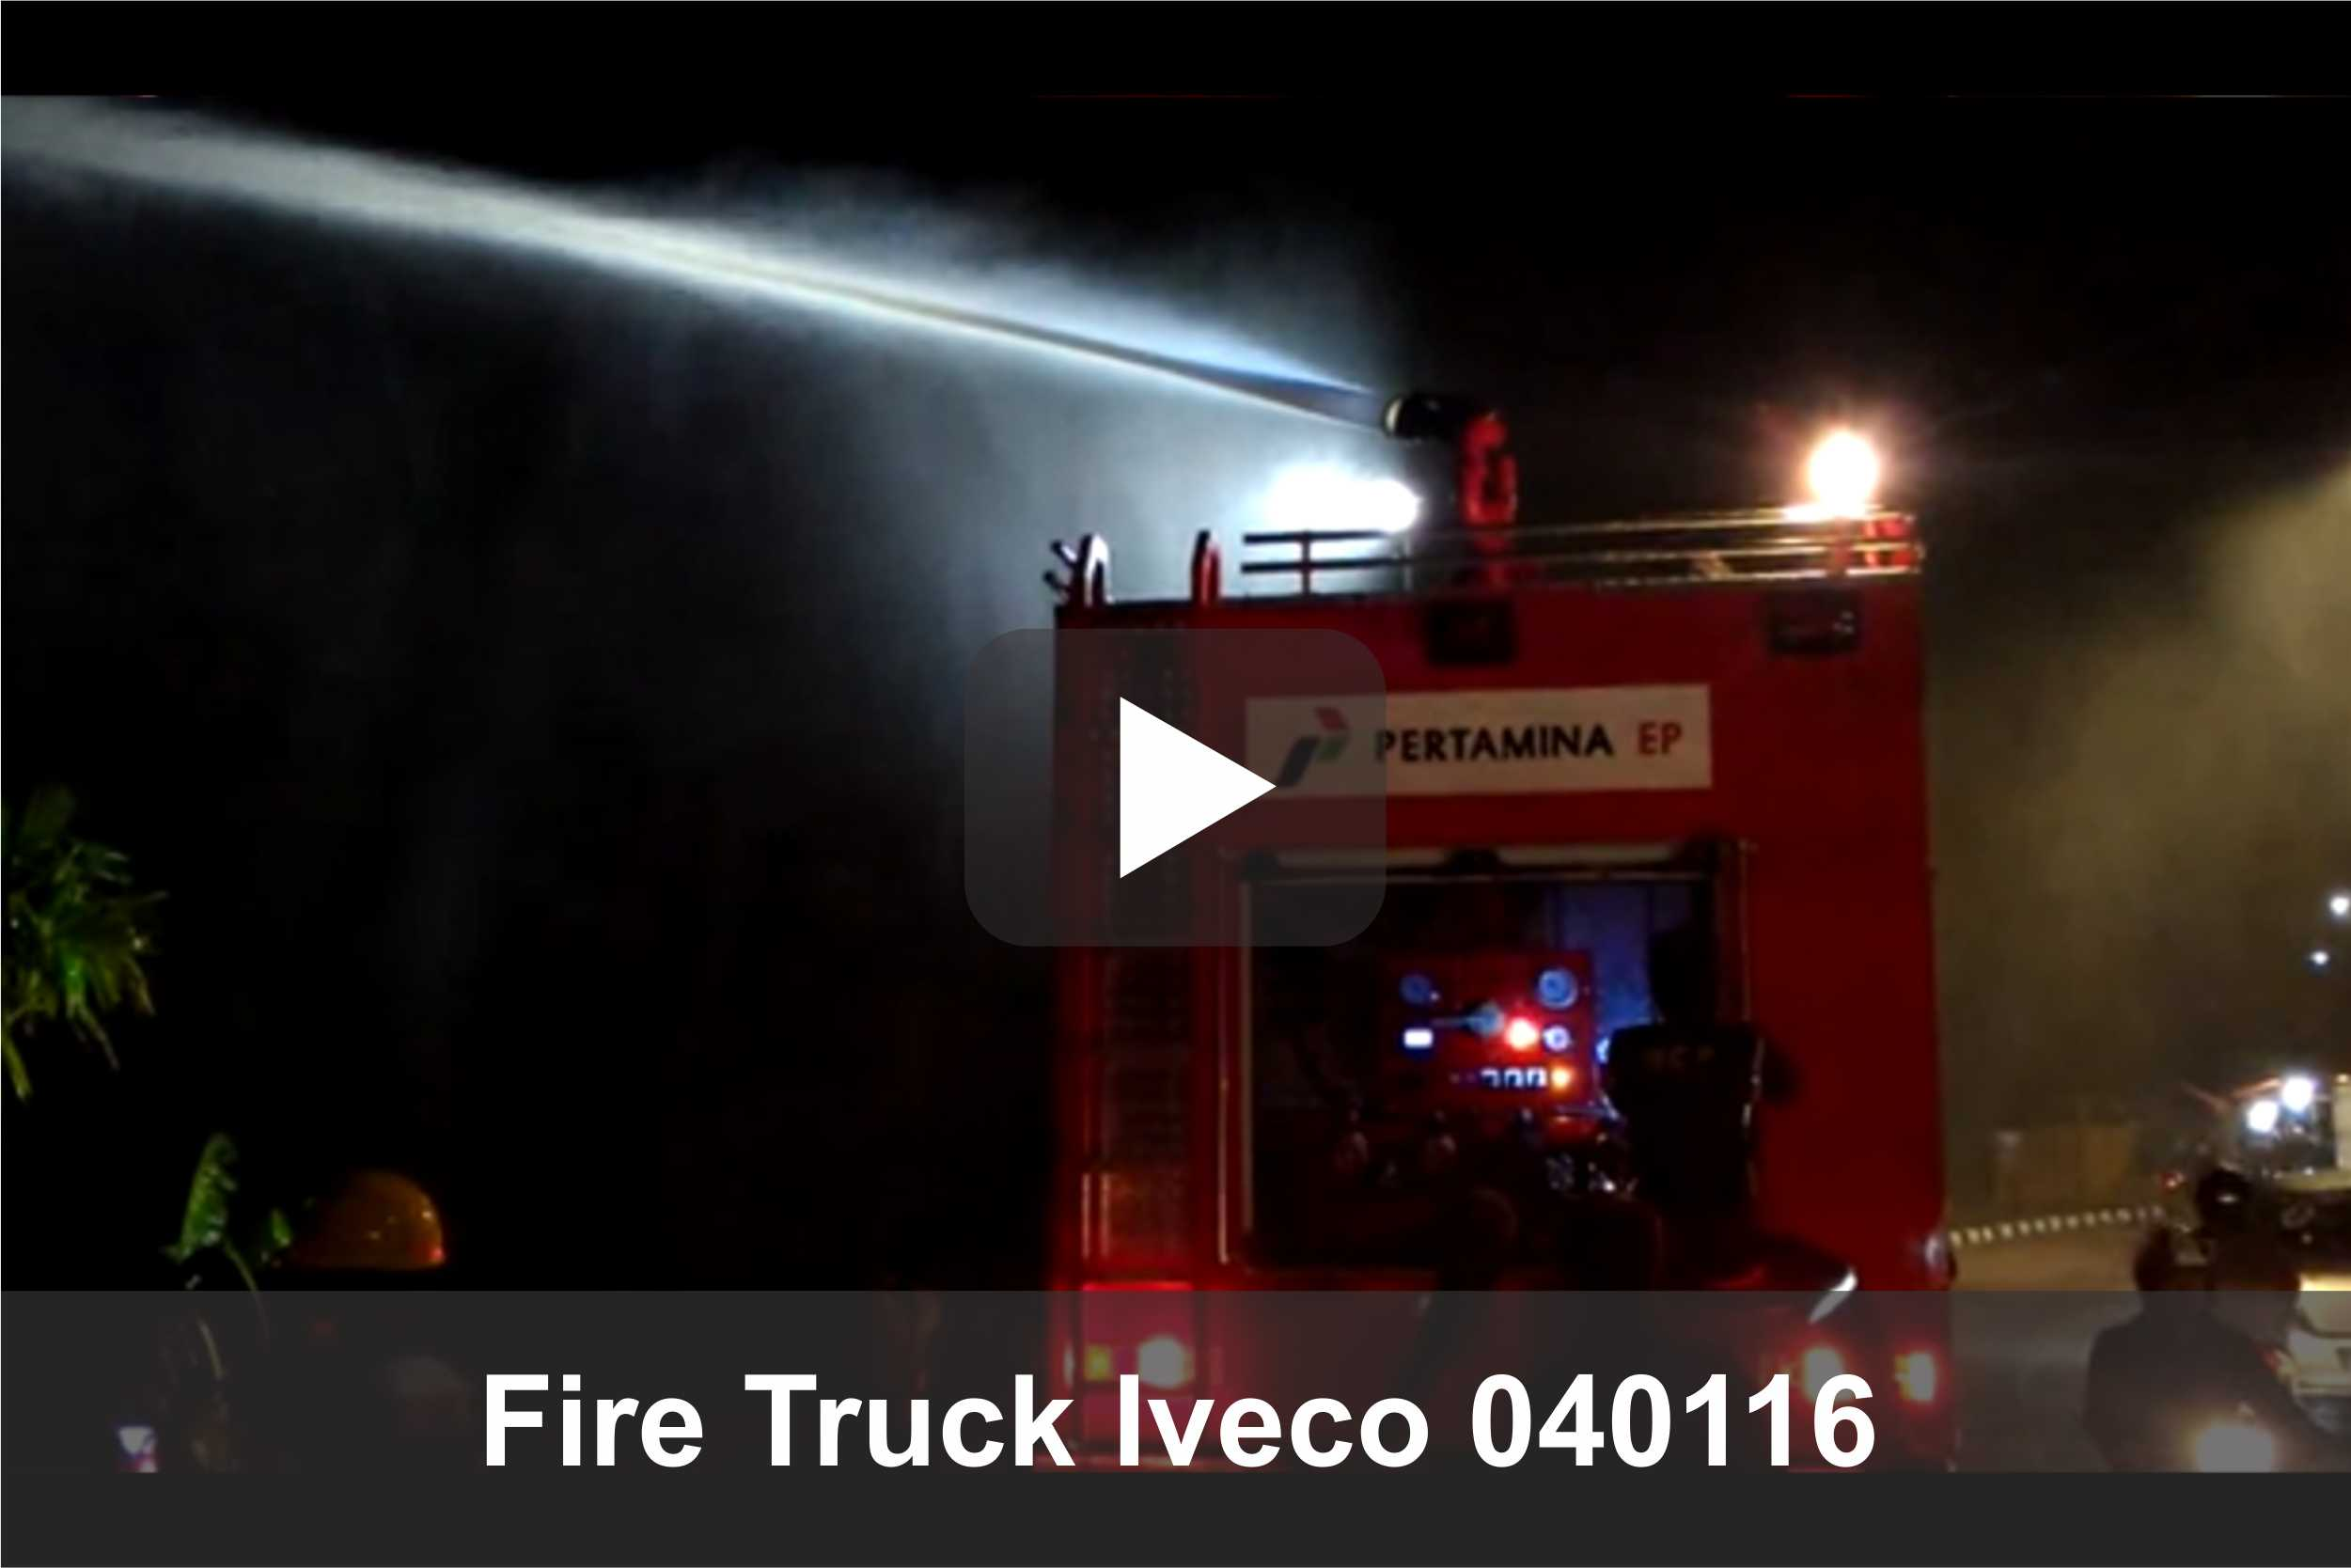 Fire Truck Iveco 040116 2